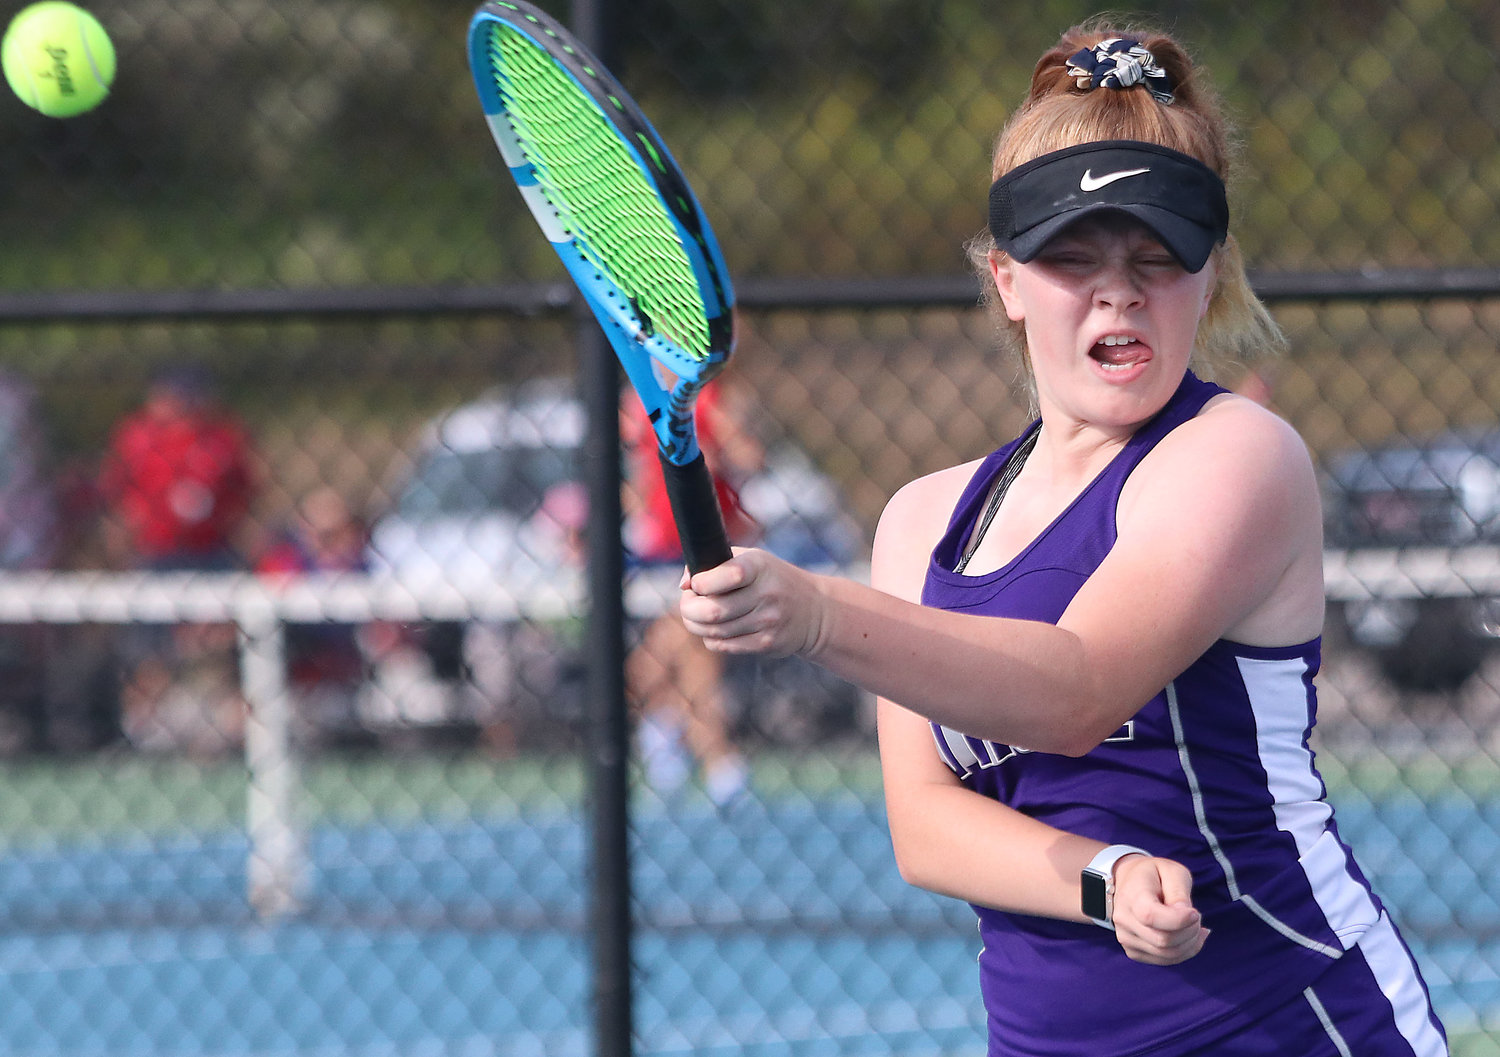 Huskies No. 1 singles player Meg Dolan hits a forehand back at Portsmouth's Delaney Lippert. She won the match in three sets.